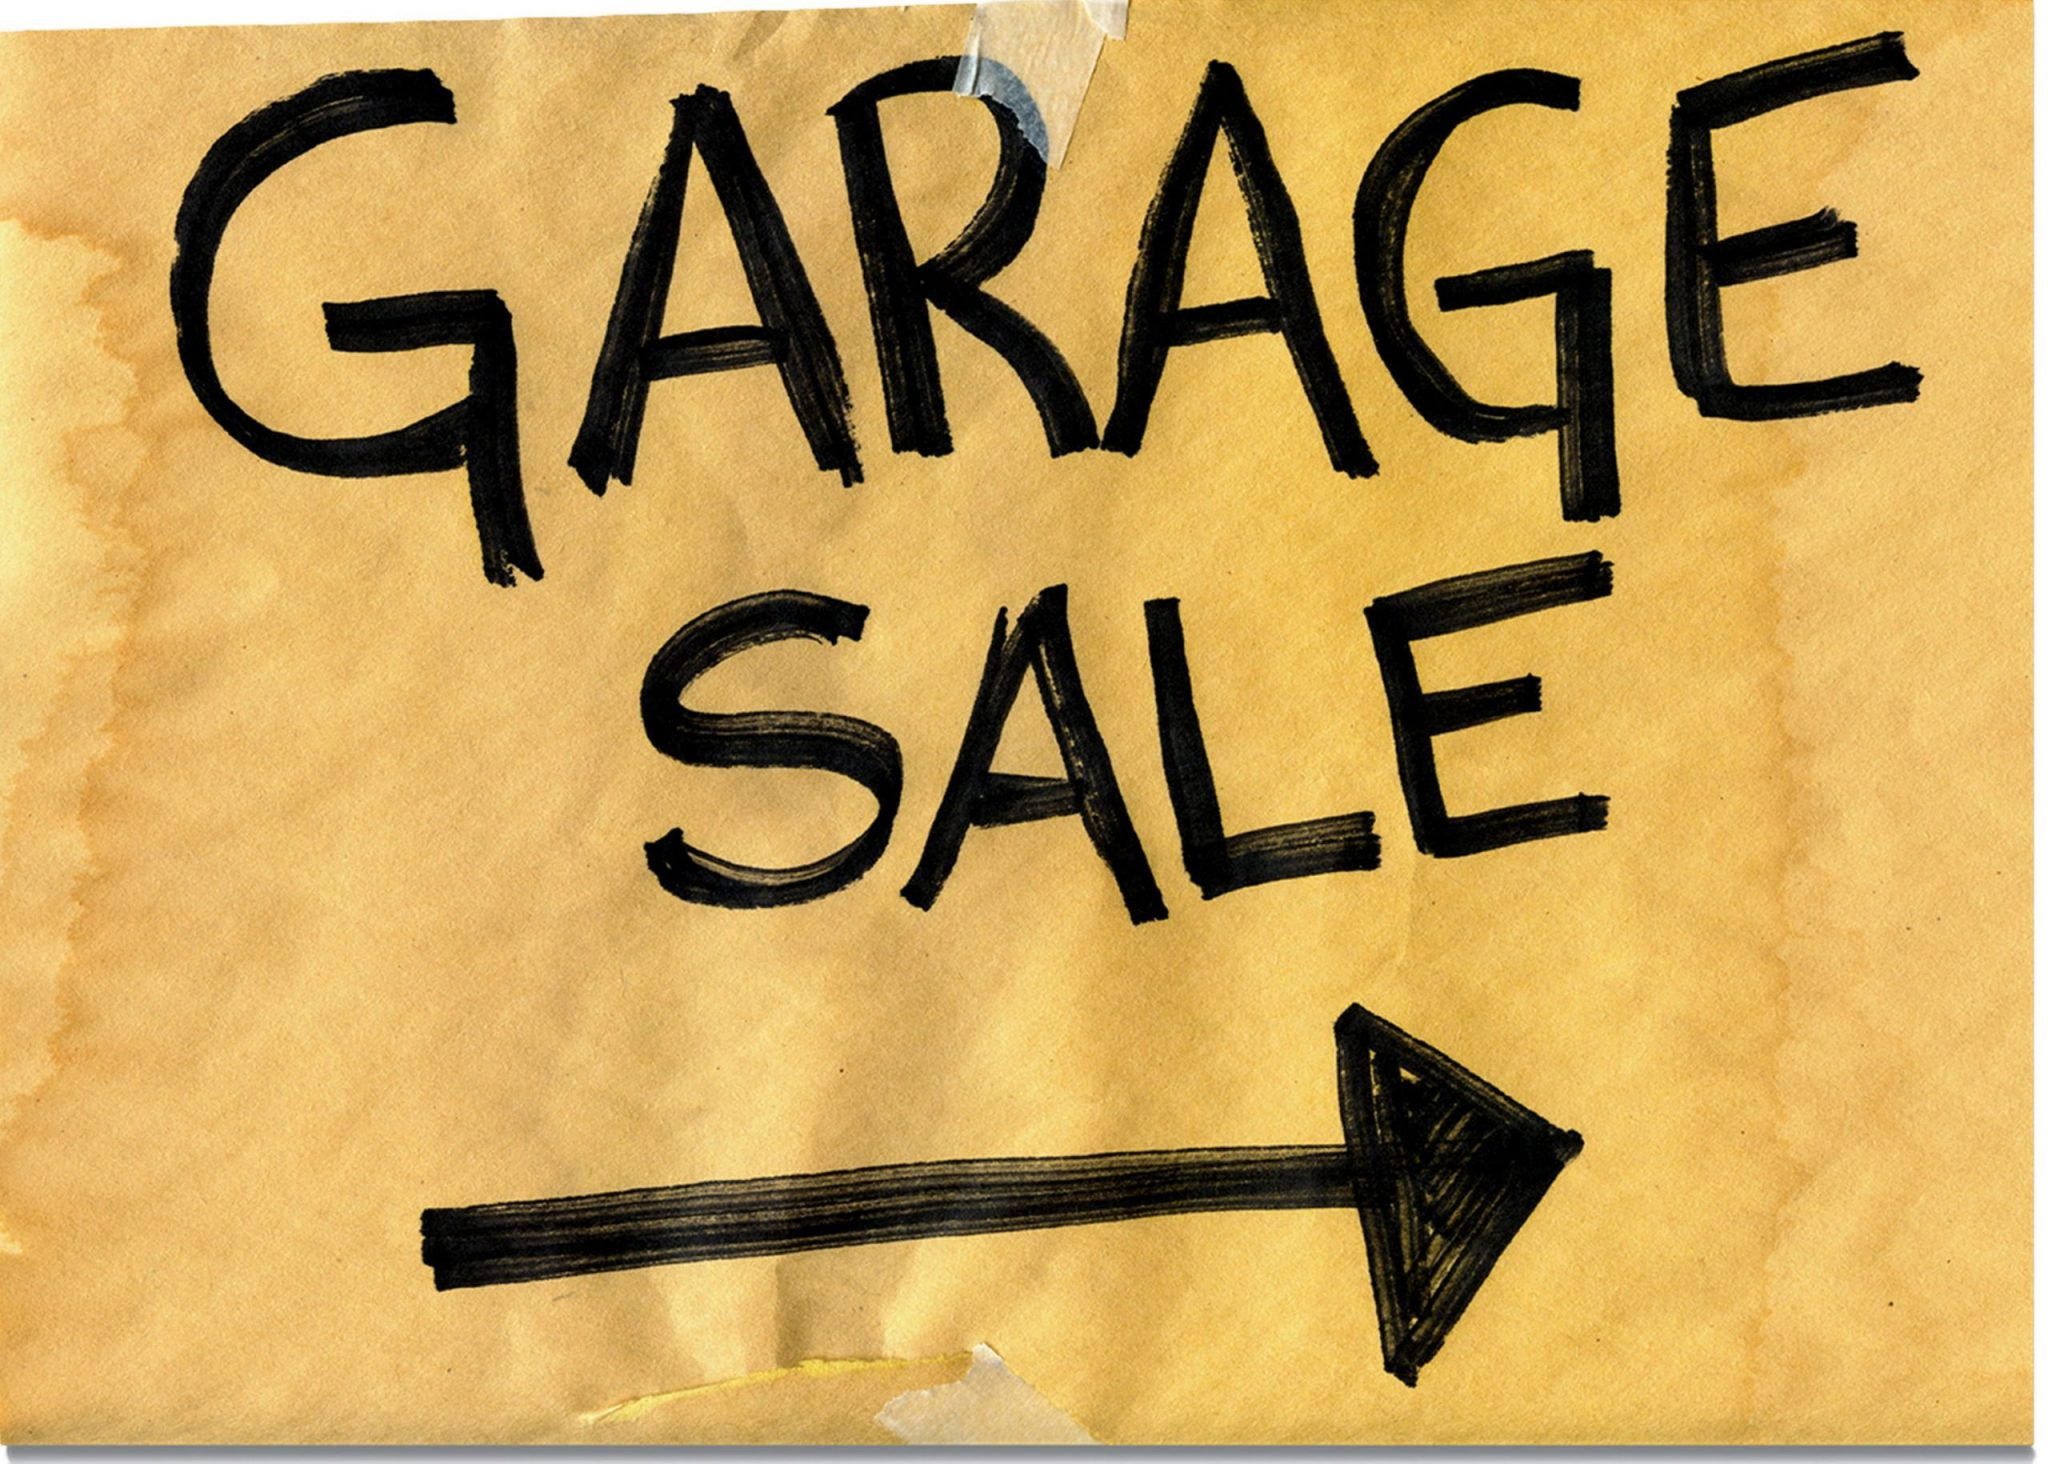 PODCAST: The Garage Sale Is Officially Happening